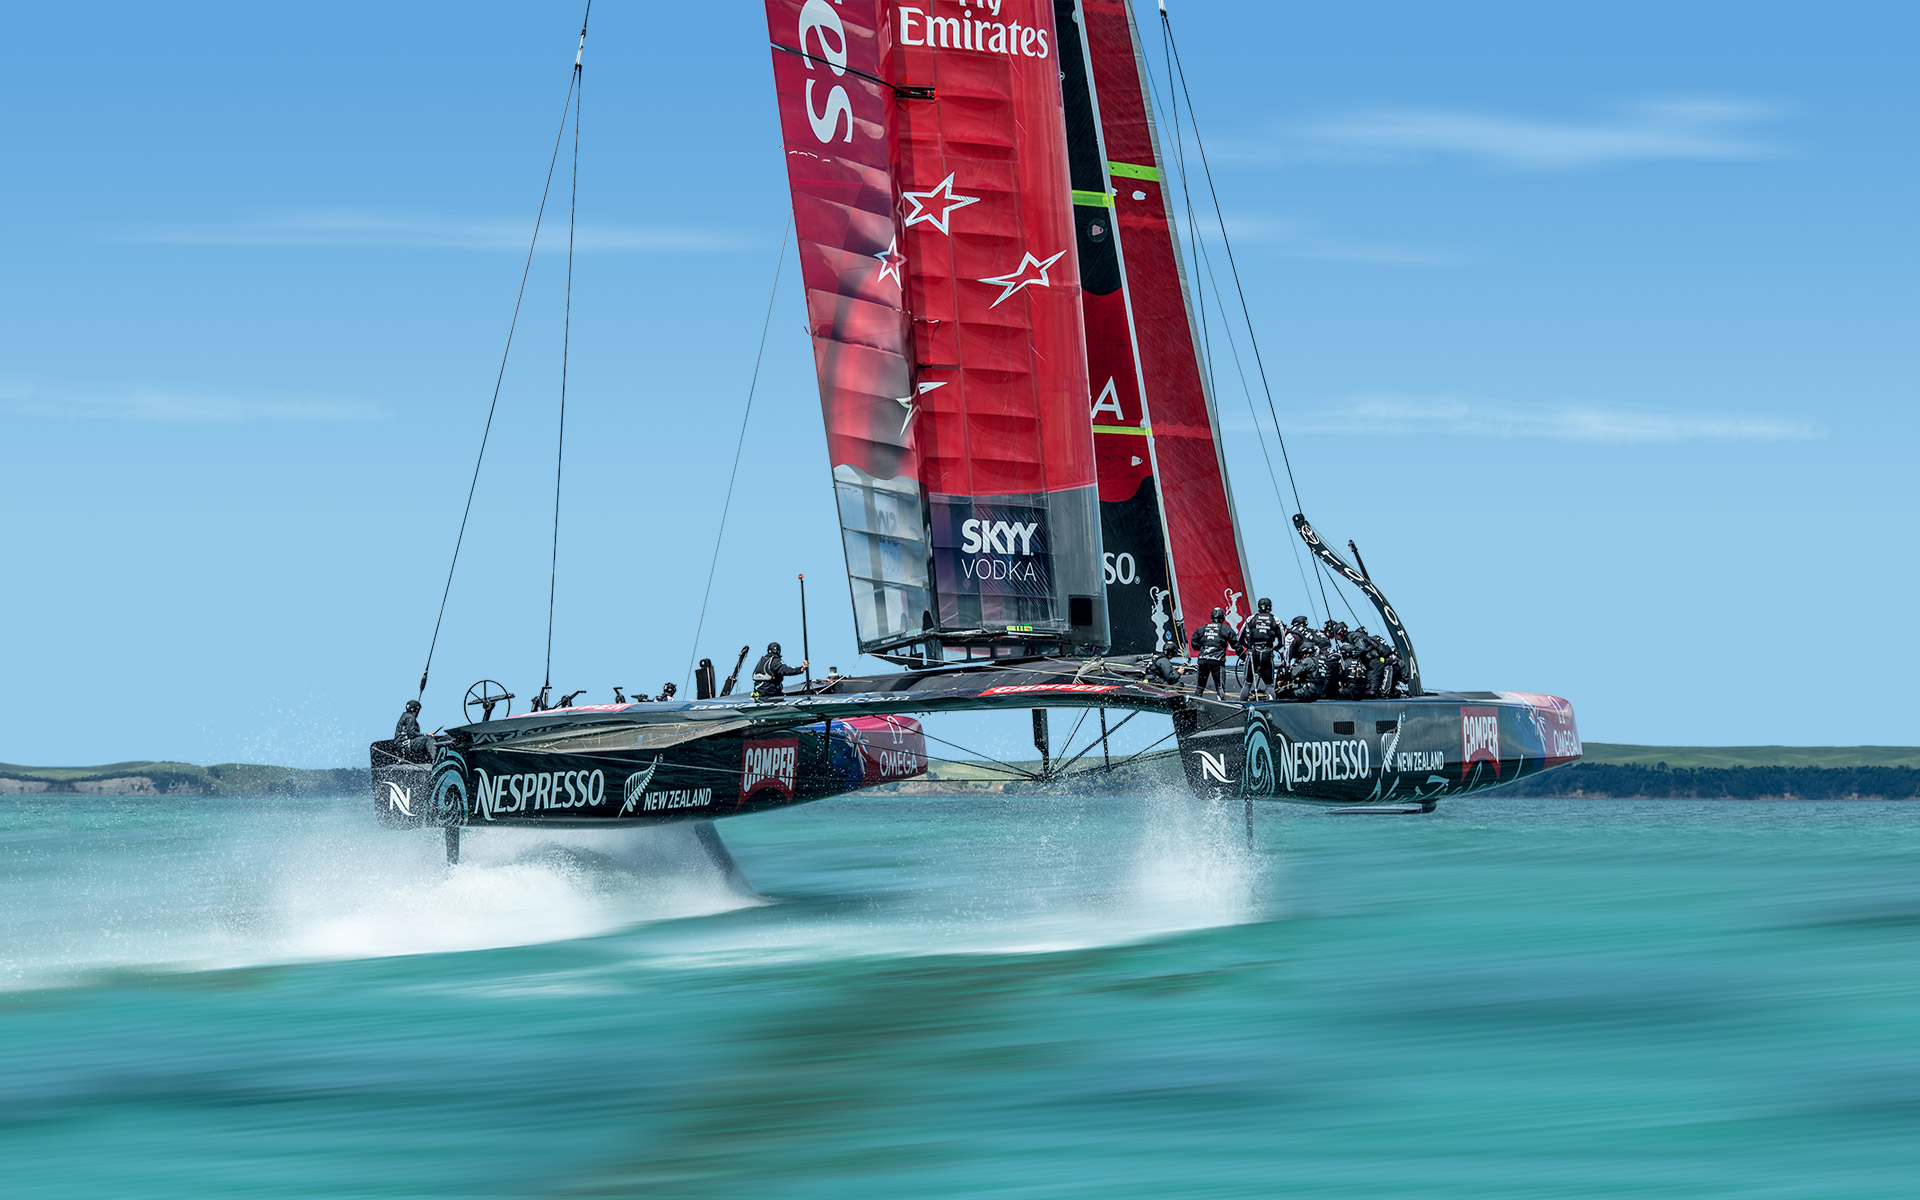 Emirates Team New Zealand 8-1 up, yet go on to lose the 2013 Americas Cup